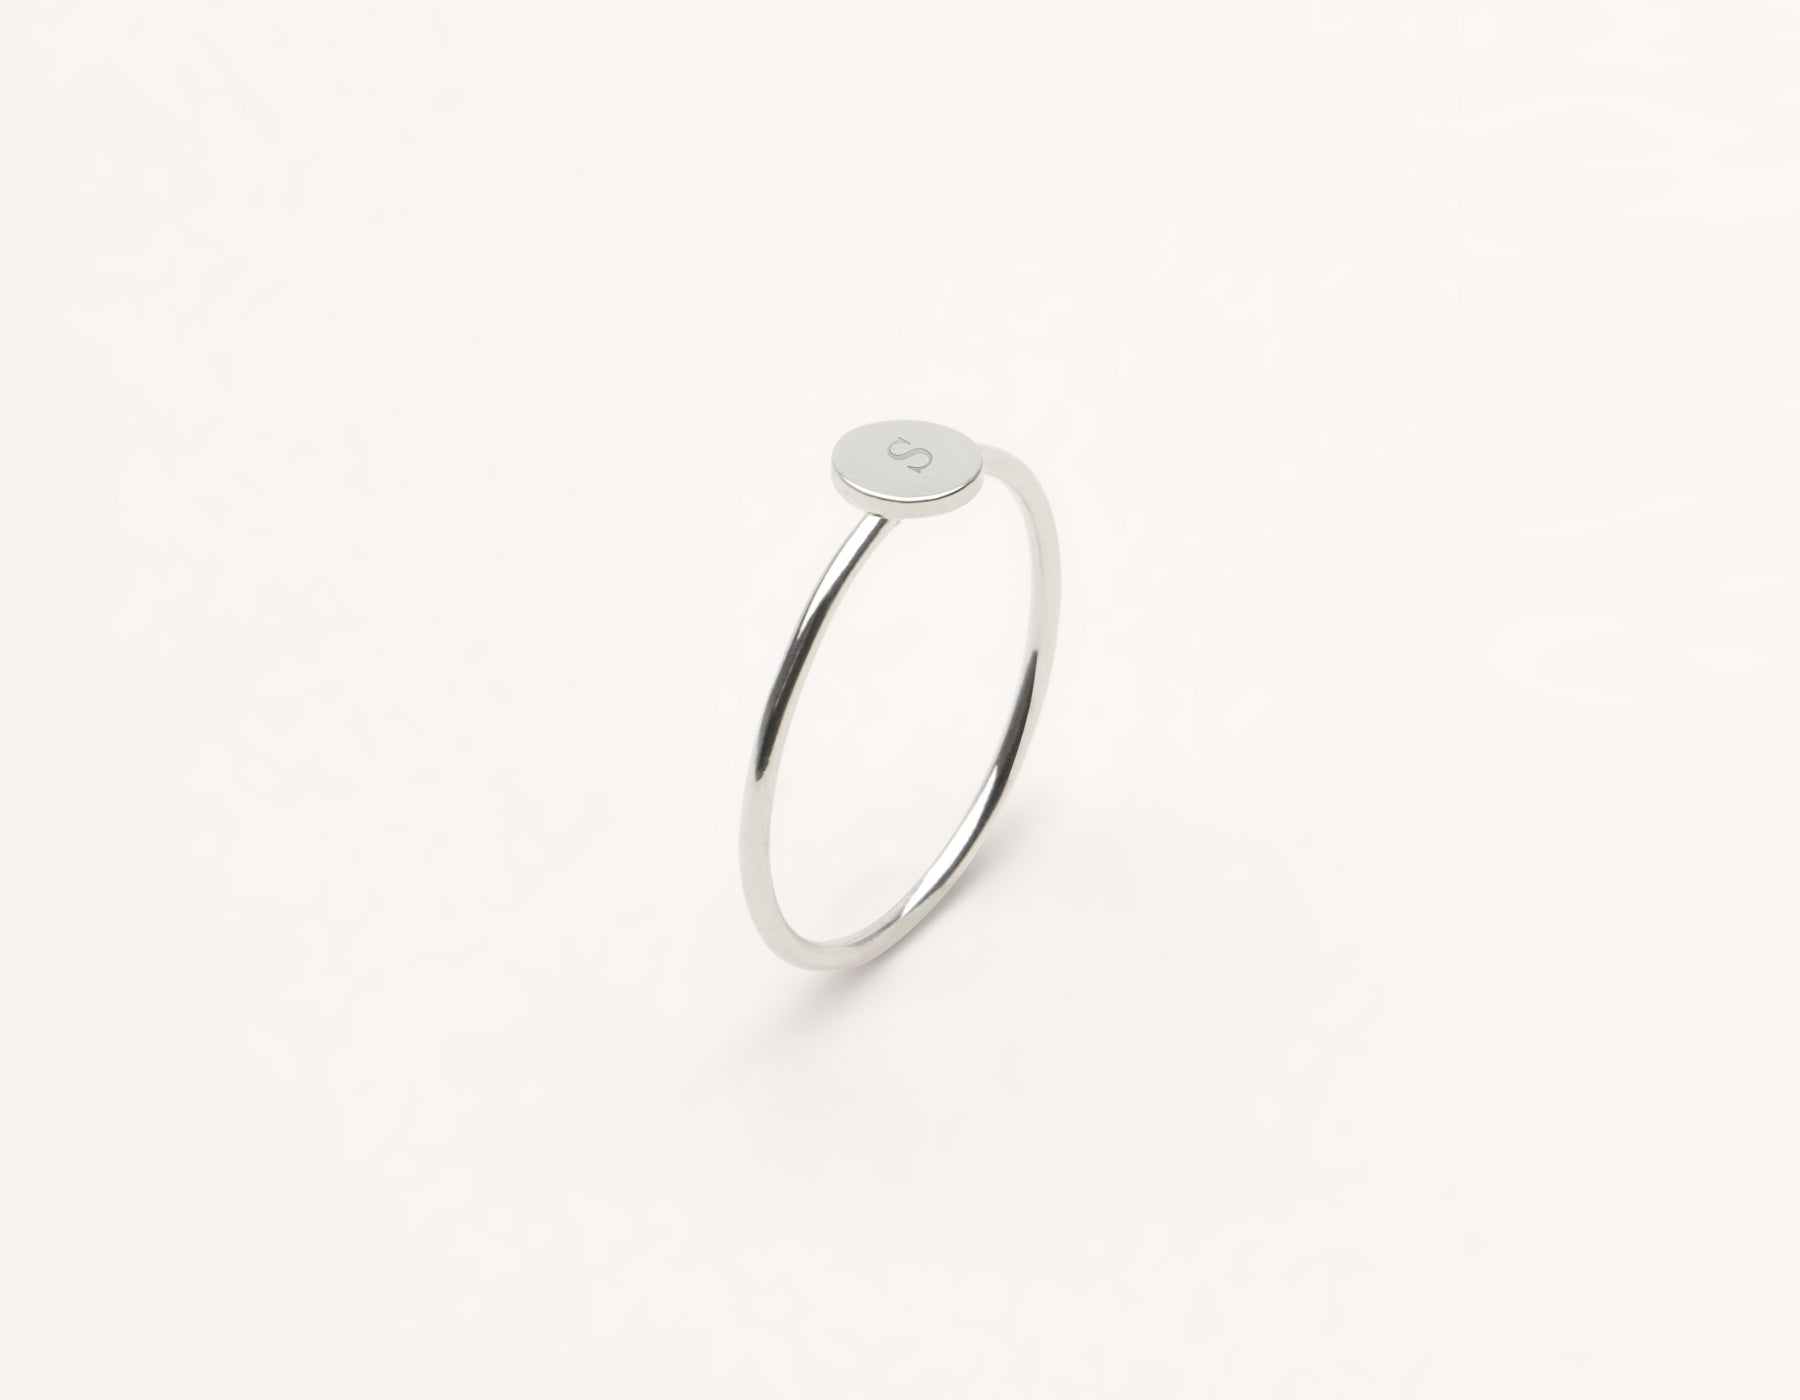 Customizable Initial Ring 14k solid gold minimalist round disk Vrai and Oro, 14K White Gold